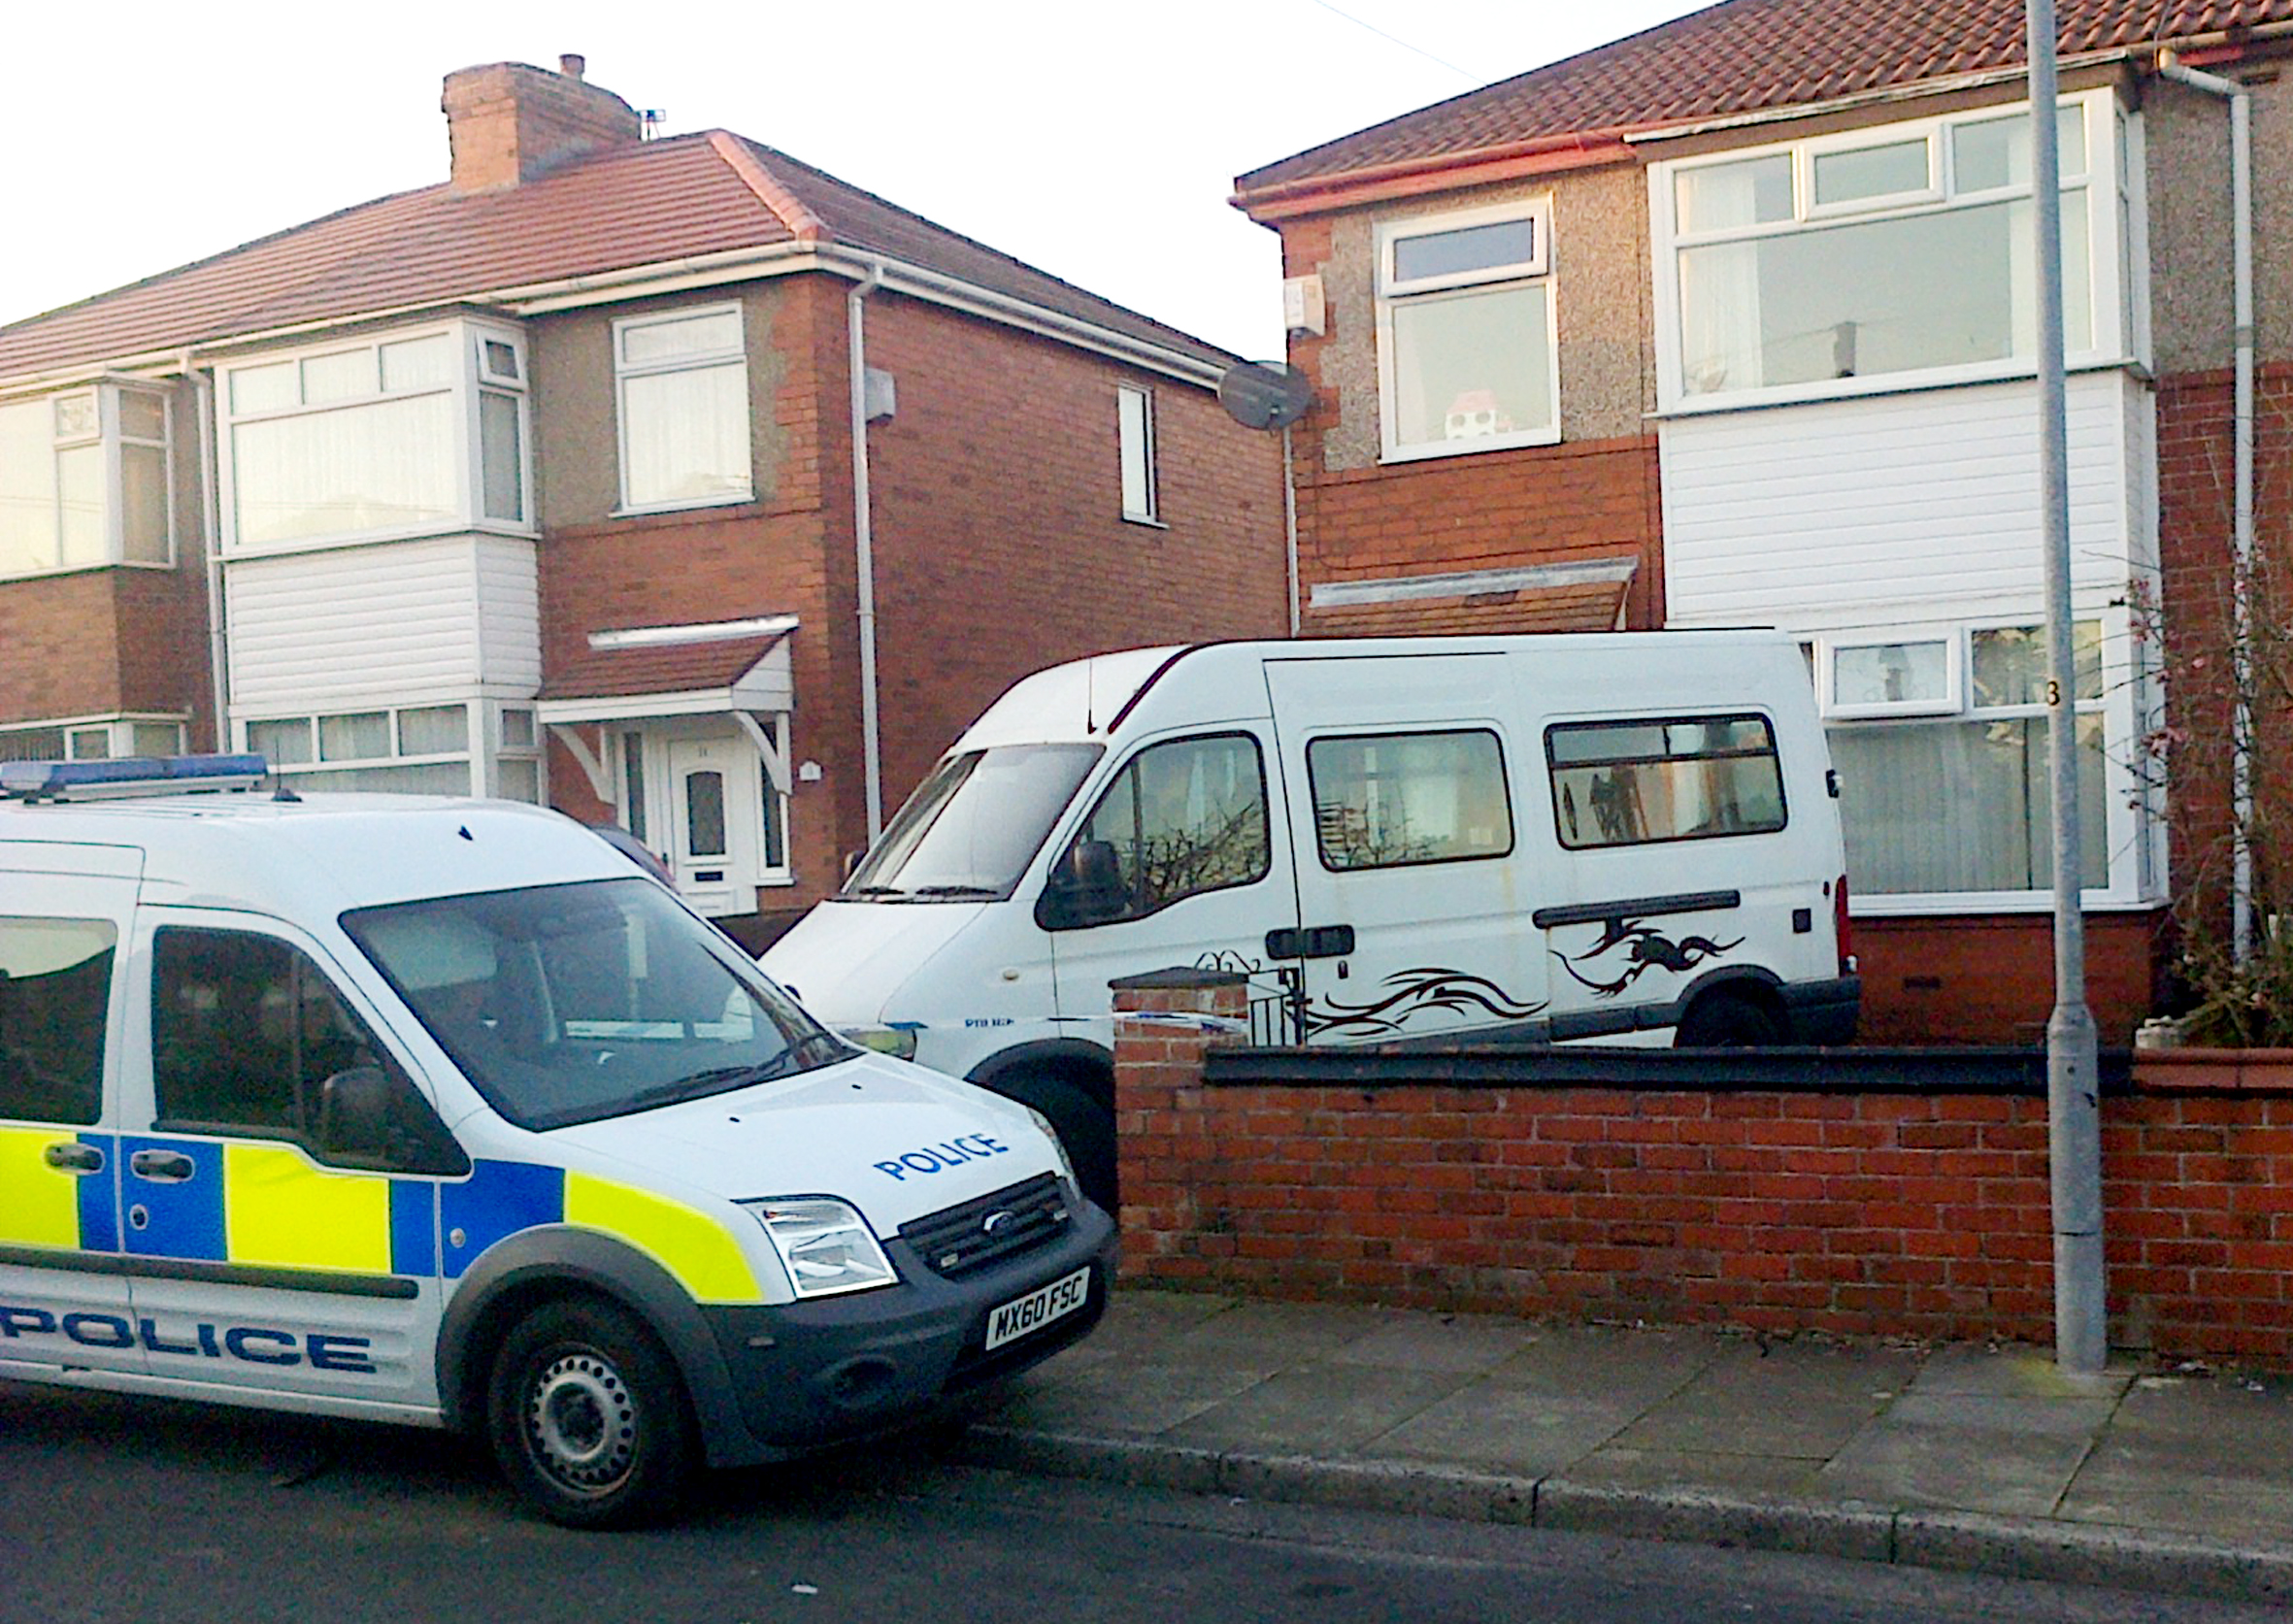 UPDATED: Third person arrested in Farnworth murder investigation